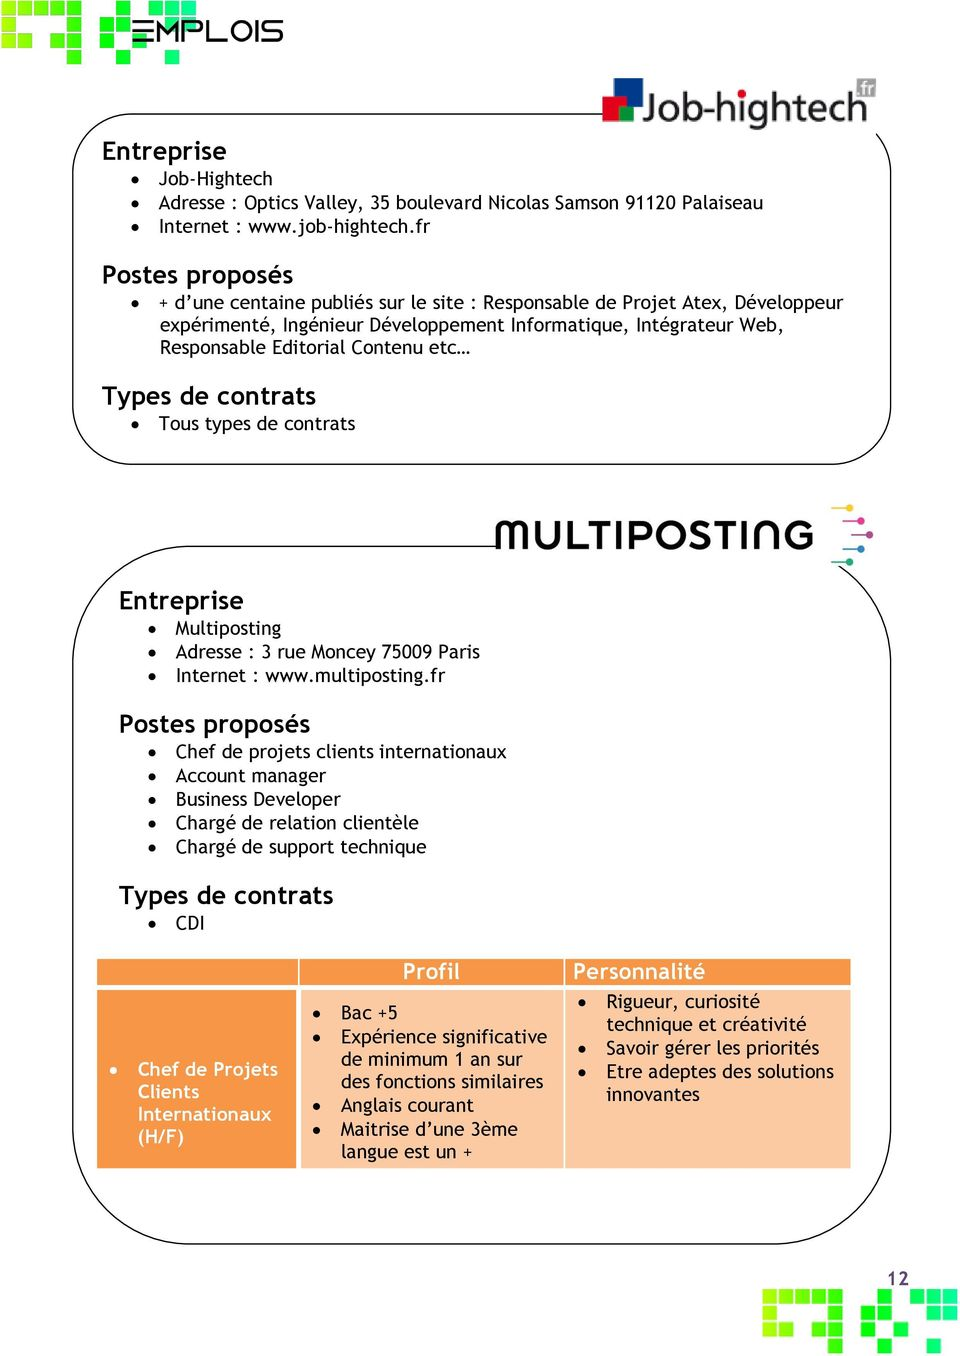 contrats Entreprise Multiposting Adresse : 3 rue Moncey 75009 Paris Internet : www.multiposting.